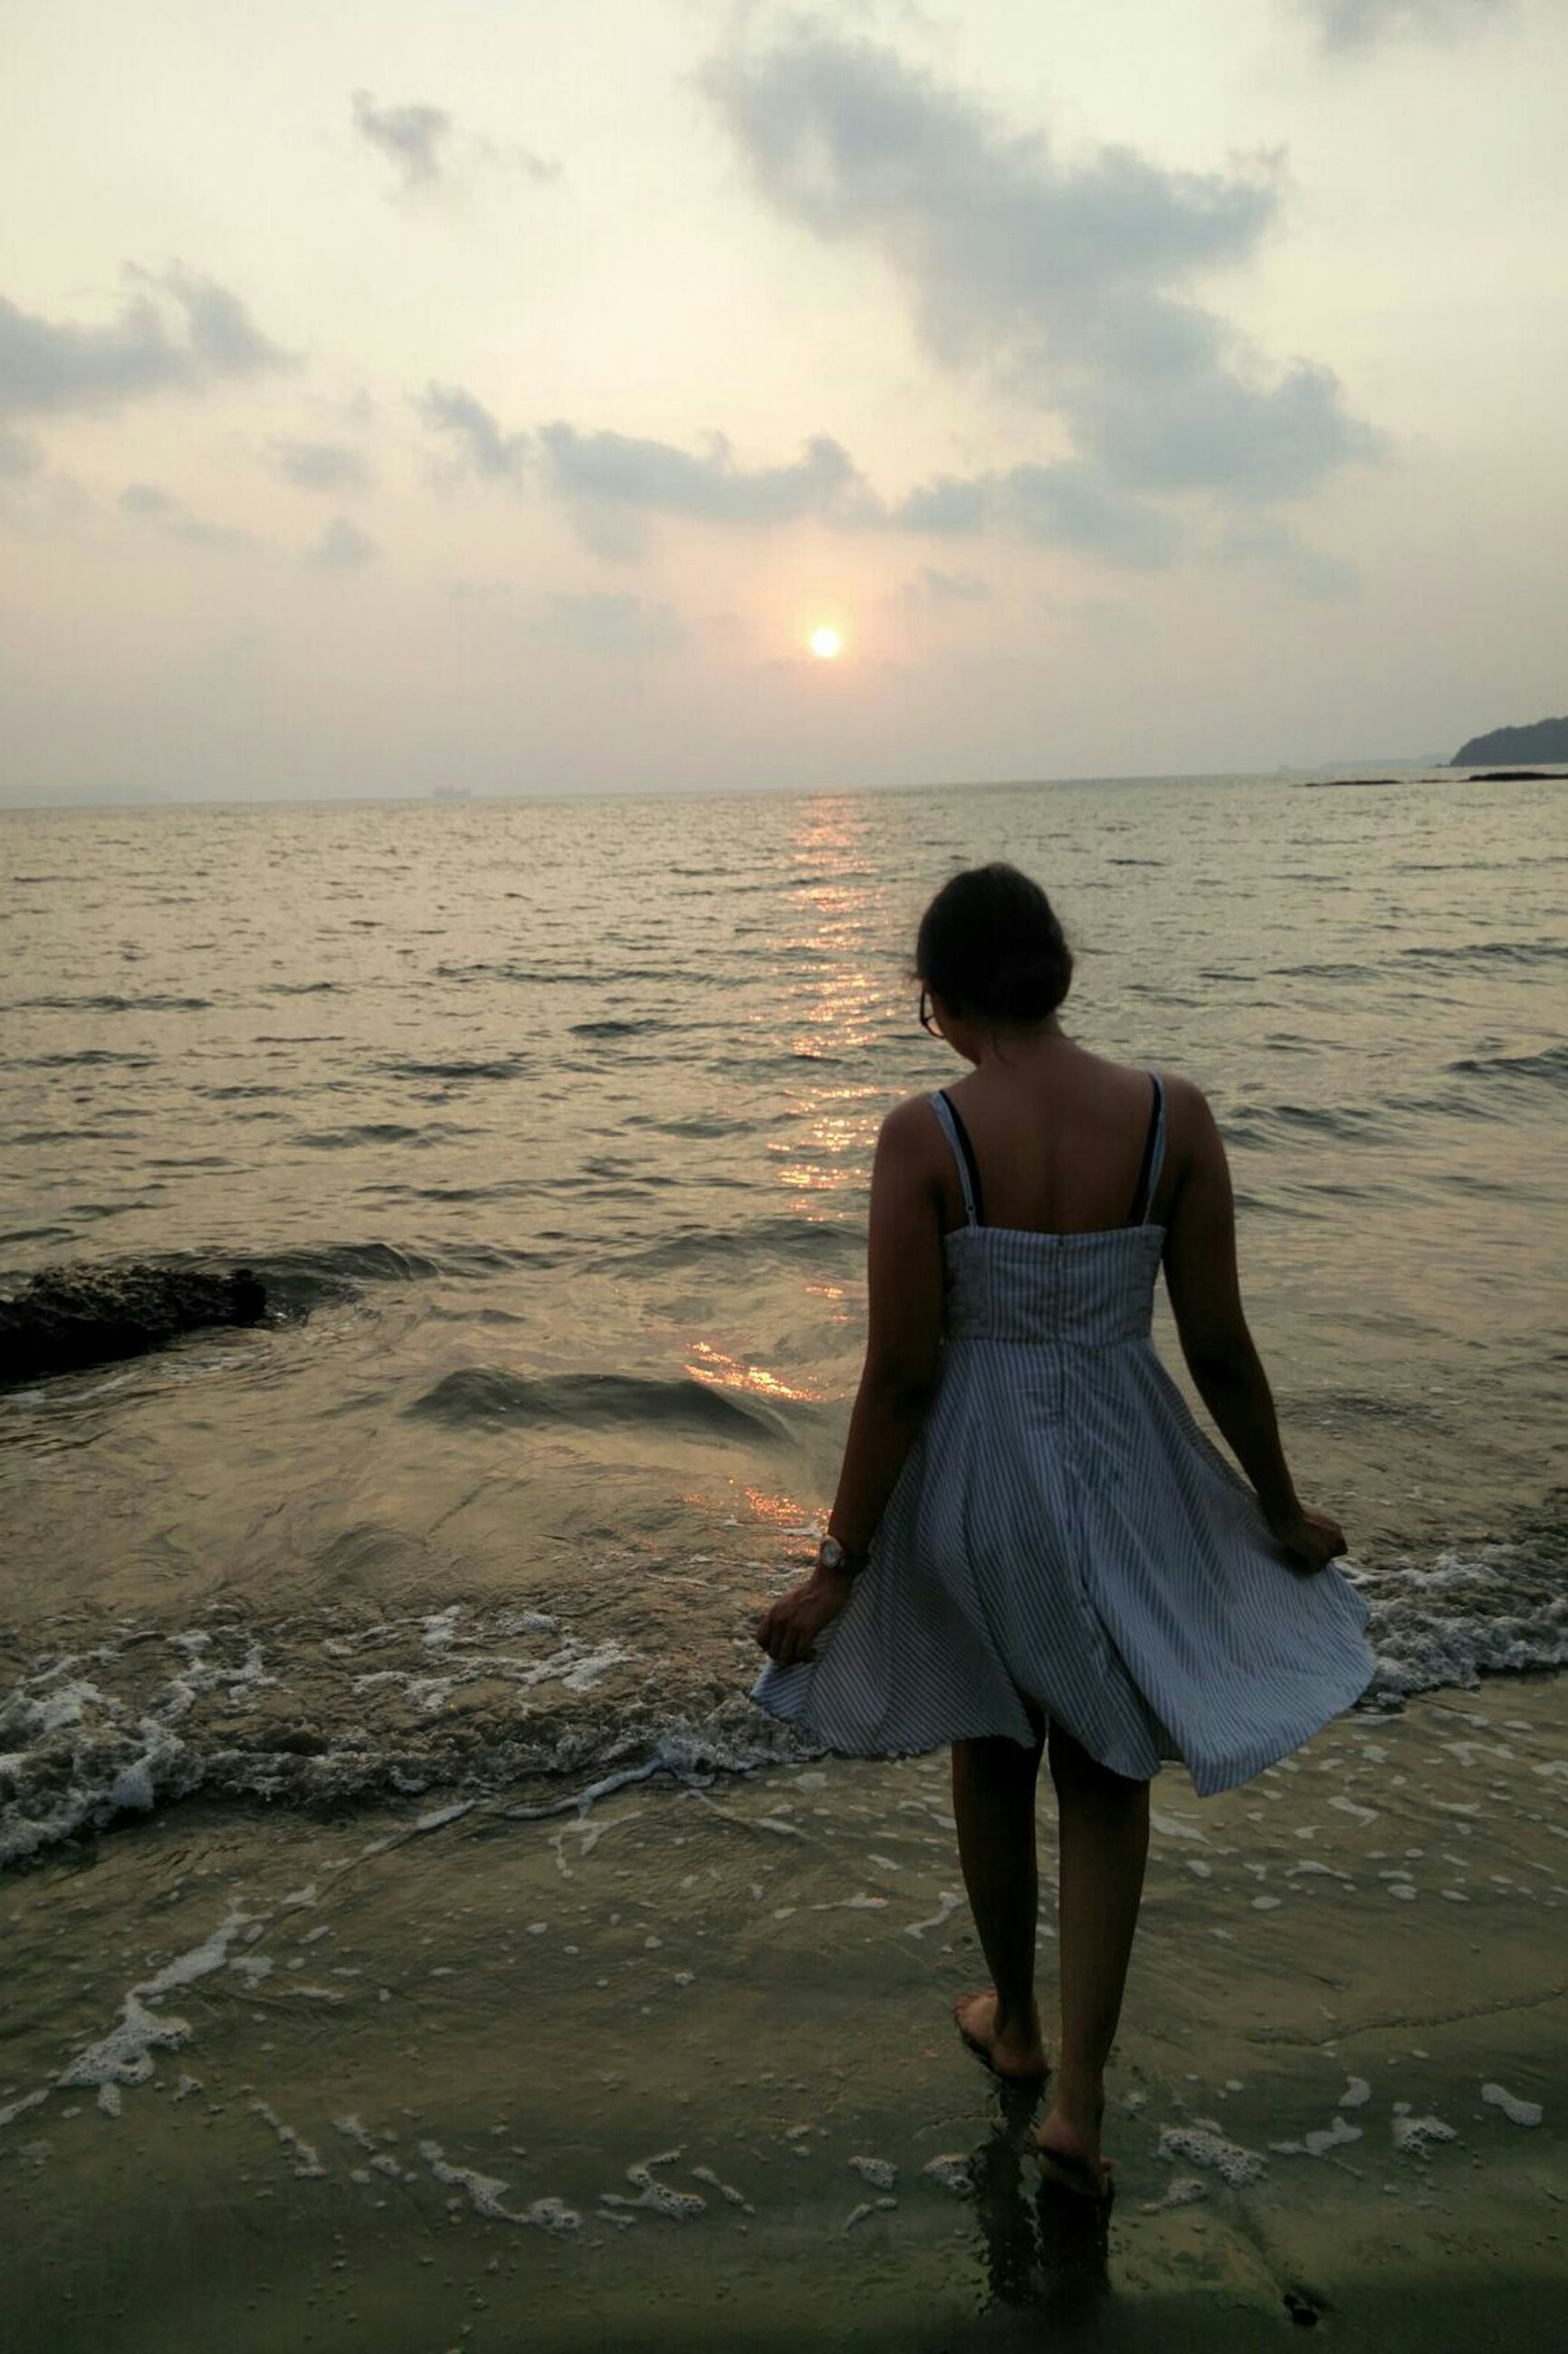 sea, water, sky, horizon over water, rear view, lifestyles, leisure activity, tranquil scene, standing, tranquility, scenics, beauty in nature, full length, casual clothing, beach, cloud - sky, shore, nature